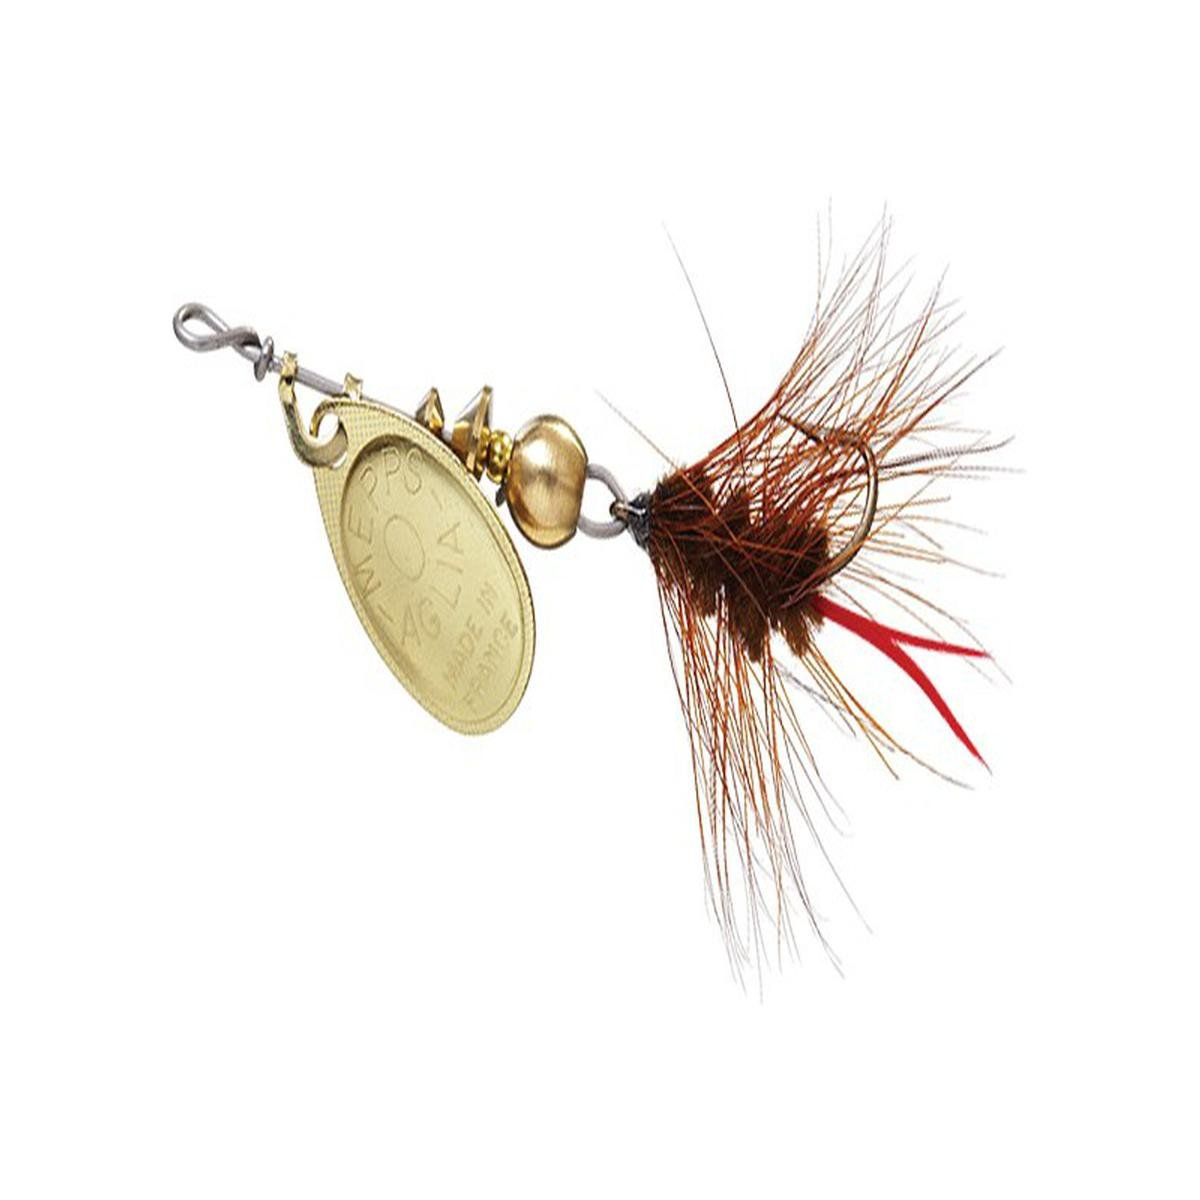 2 1//12 oz. Mepps  Aglia Spin Fly Gold//Brown Worm /& Gold//White Worm